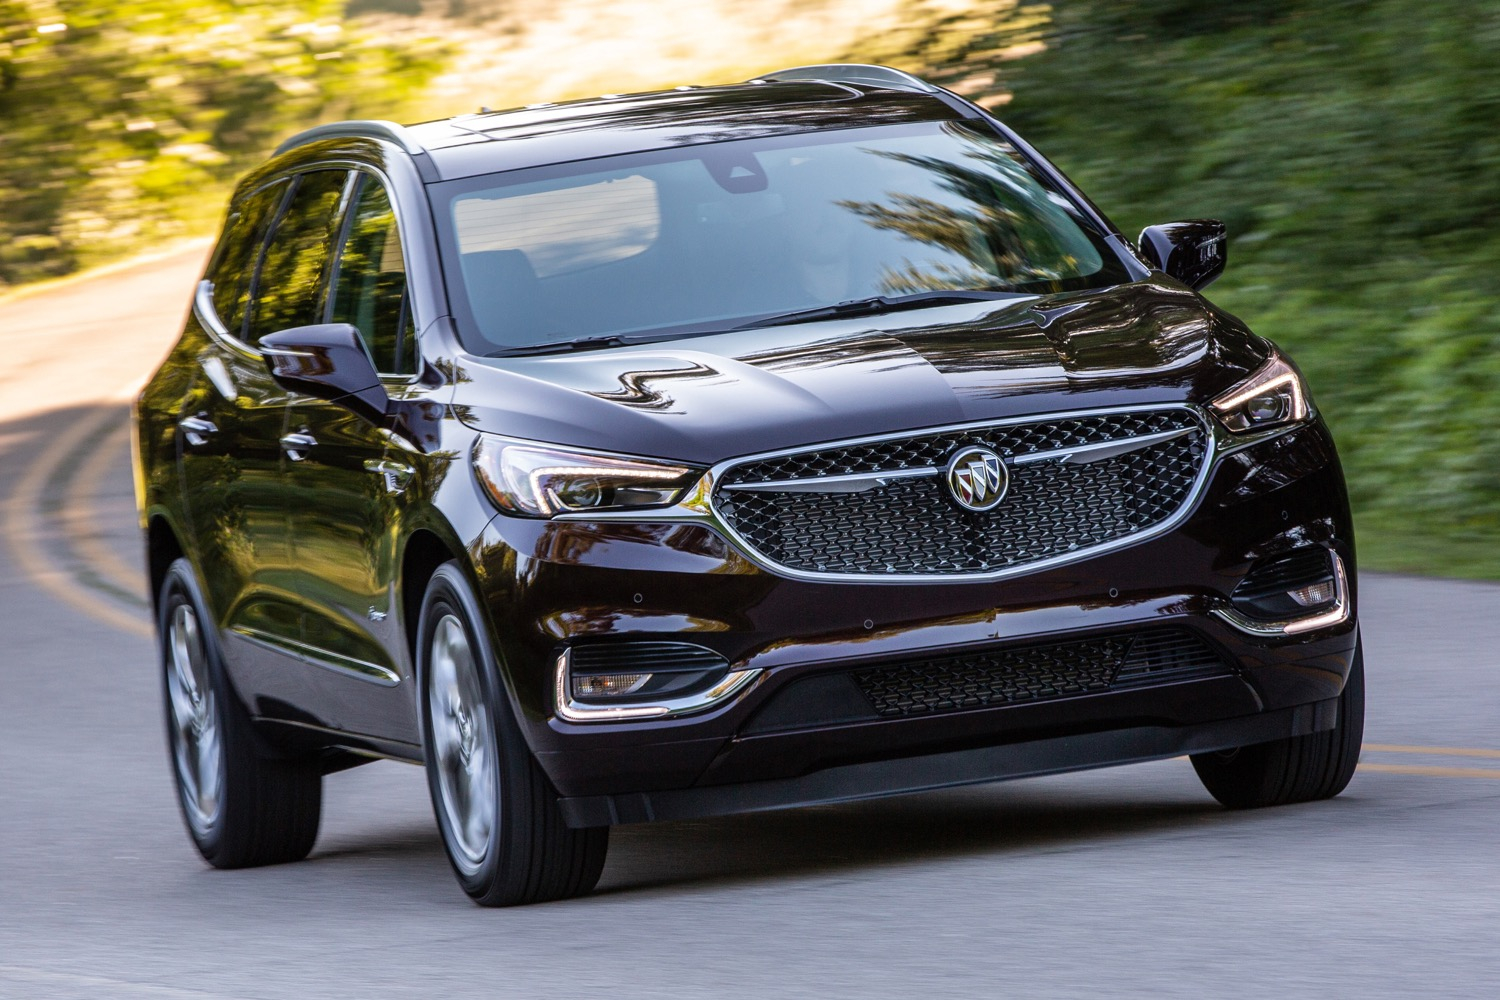 Buick Enclave Discount Totals $4,750 In February 2020 | Gm 2021 Buick Enclave Avenir Engine, Specs, Lease